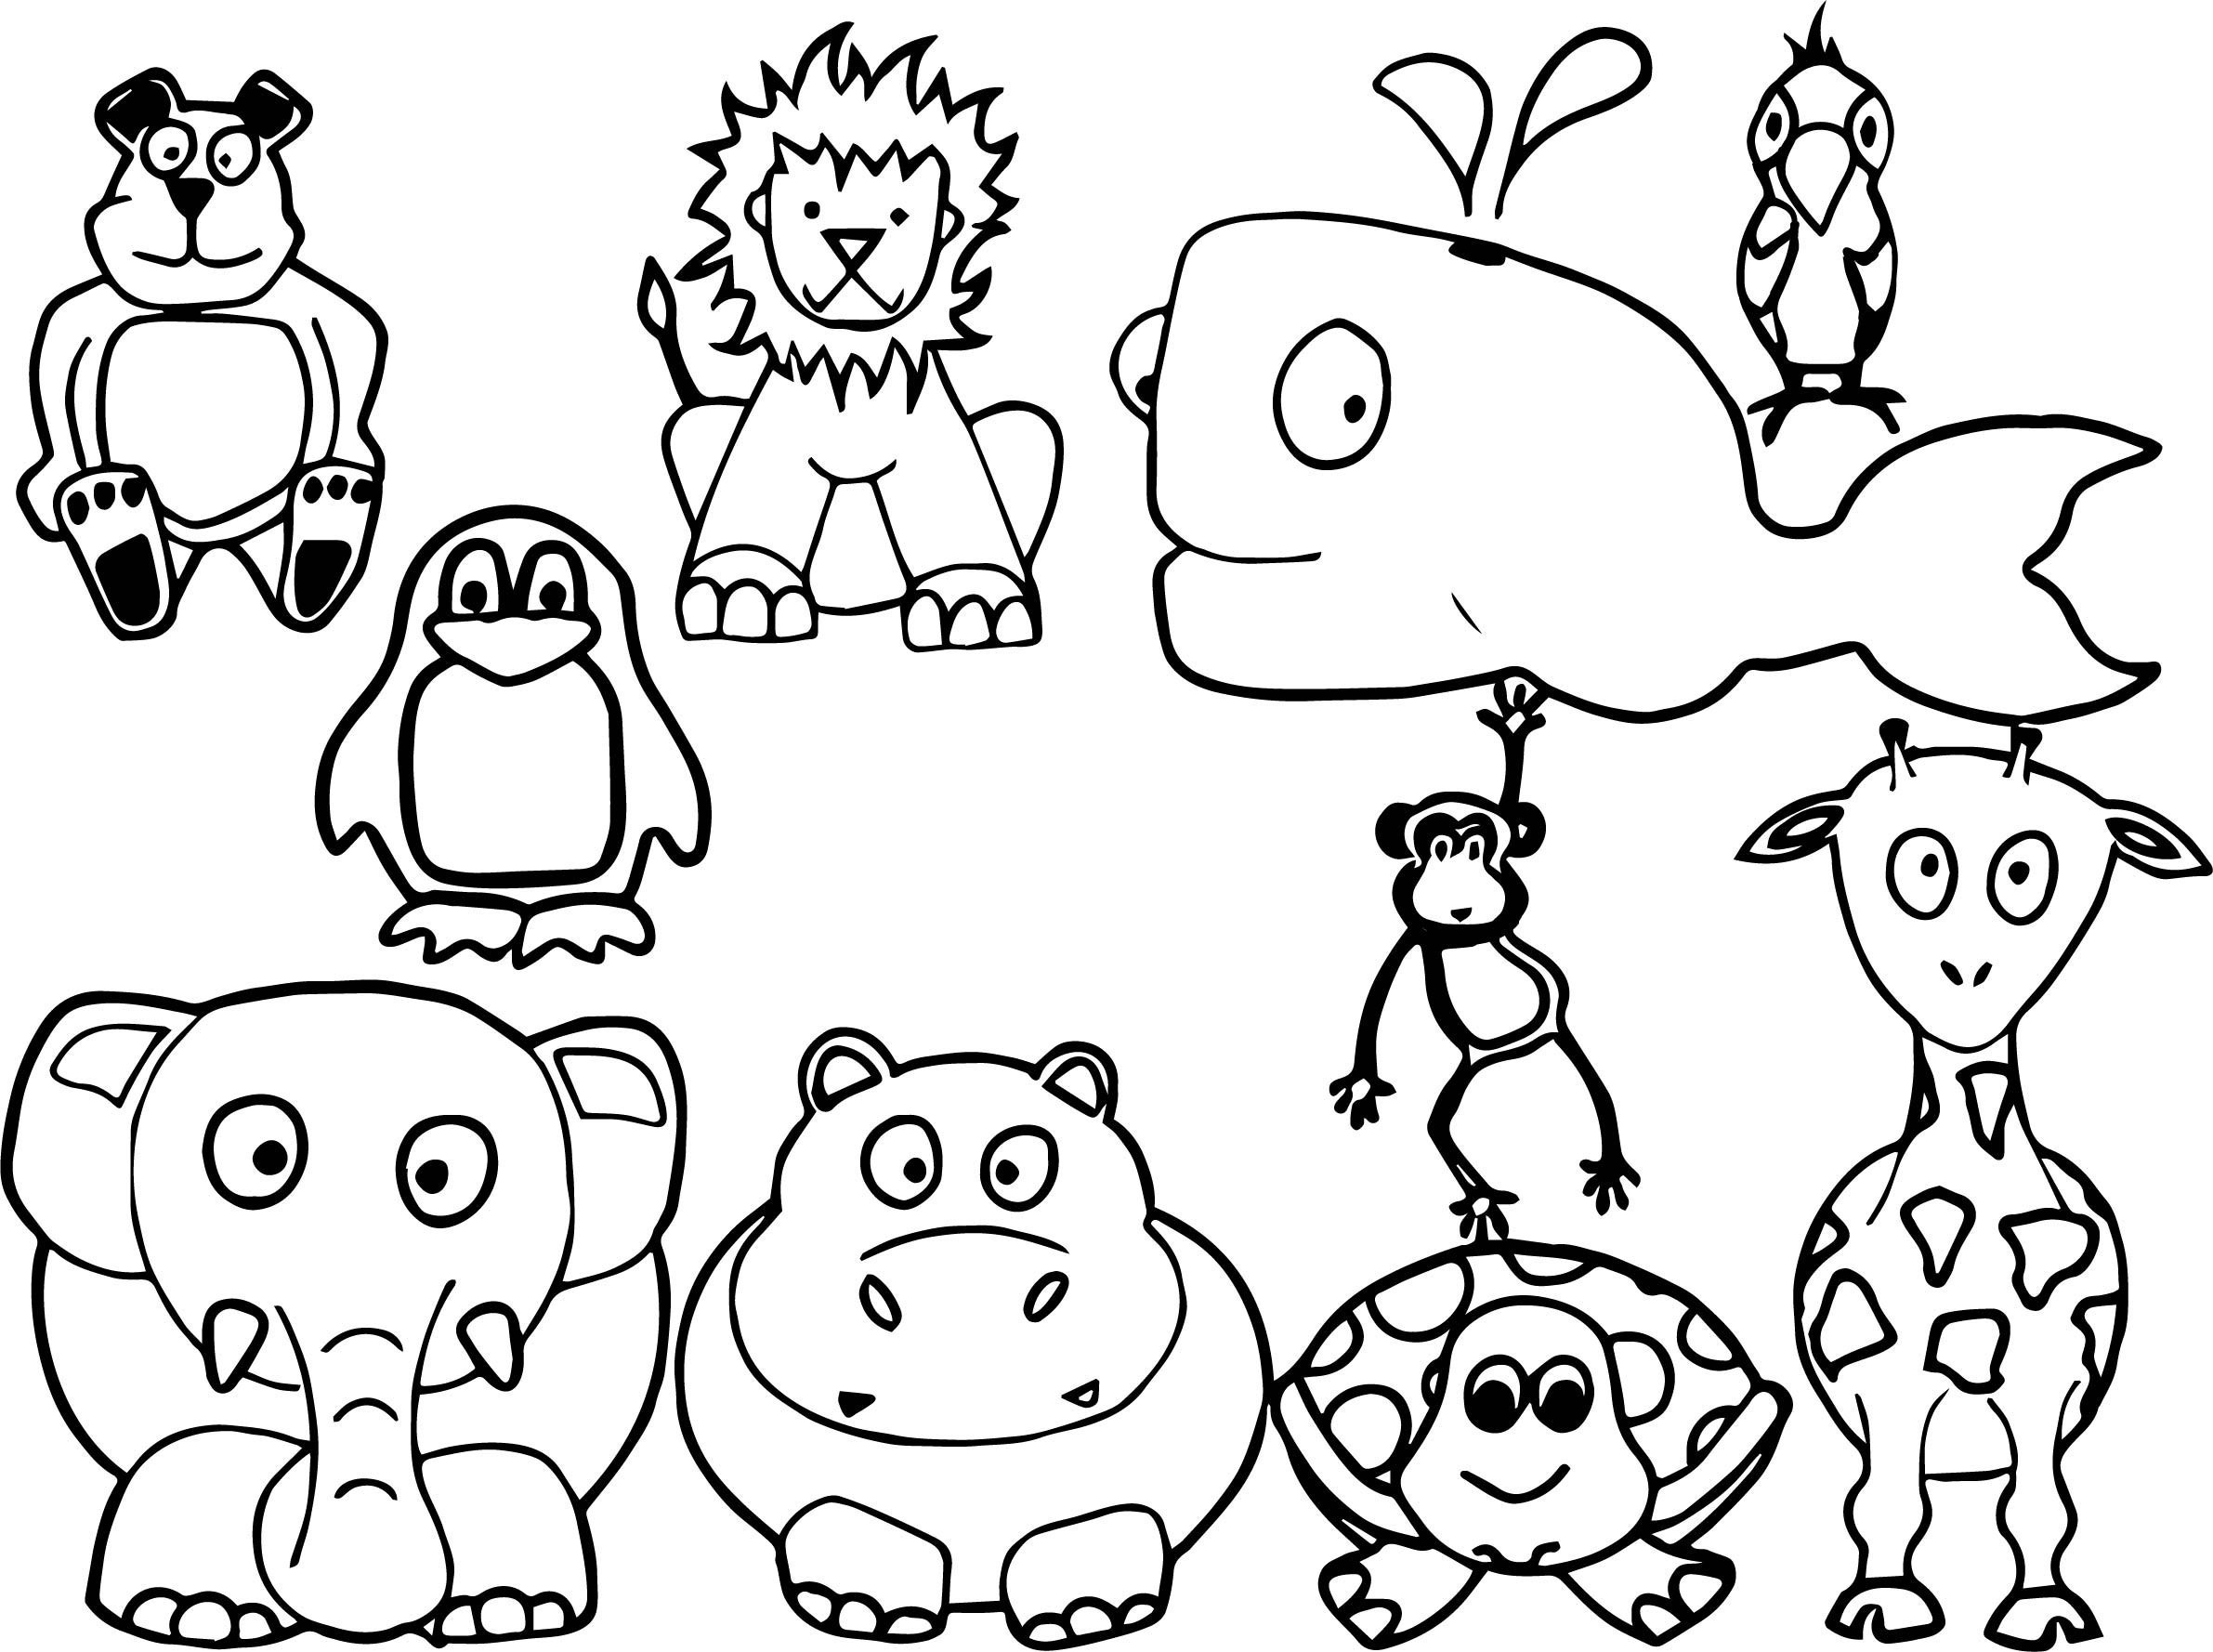 coloring pictures of animals animal coloring pages for adults best coloring pages for coloring pictures animals of